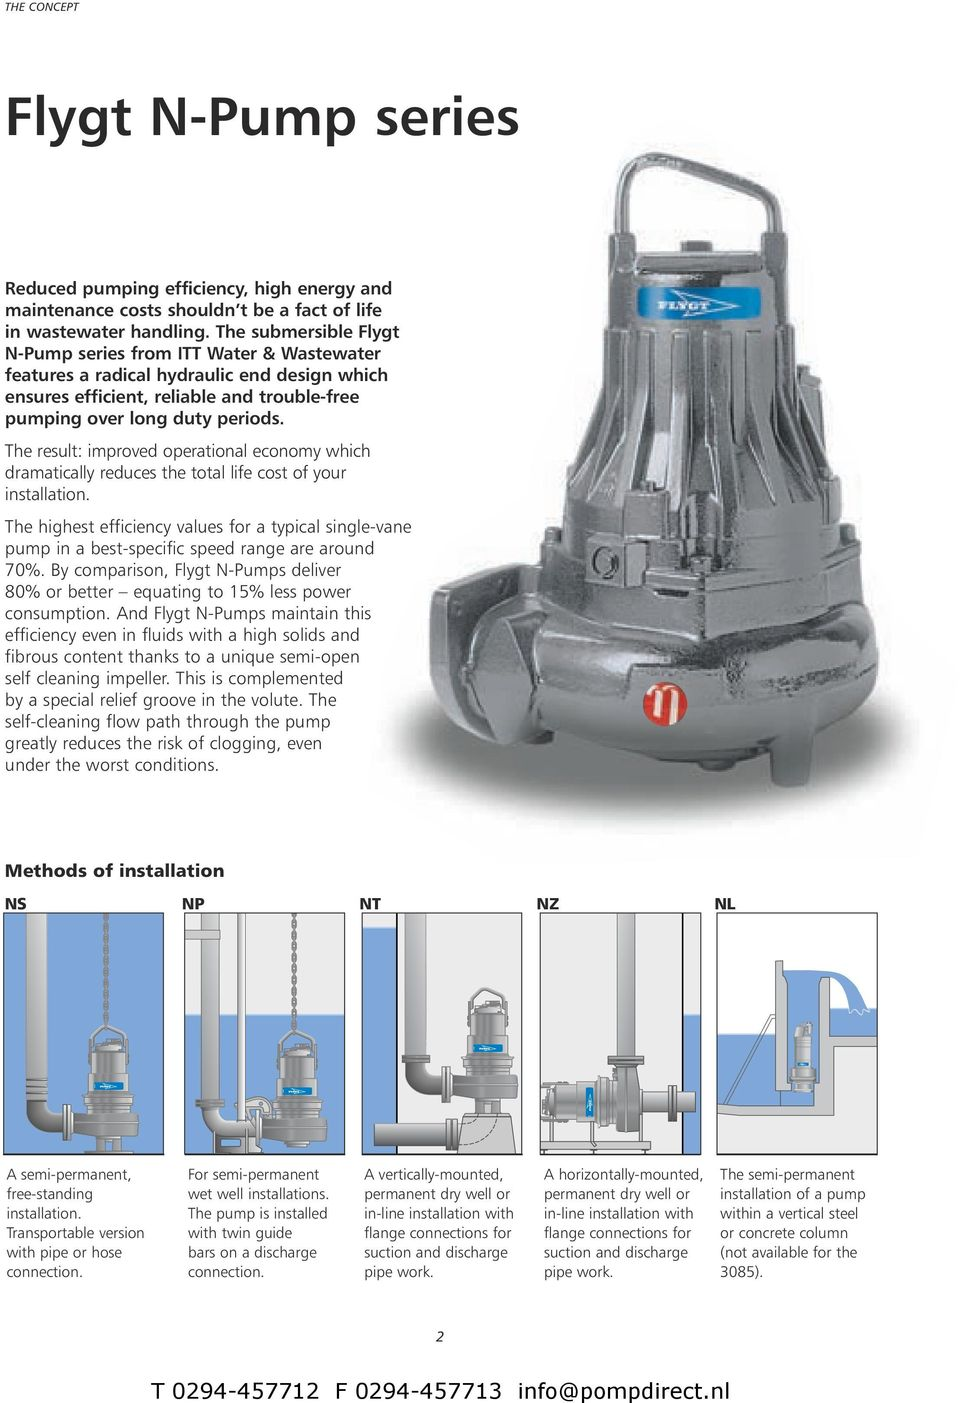 Surprising Flygt N Pumps 3085 3102 For Reliable And Efficient Wastewater Wiring Cloud Hemtshollocom